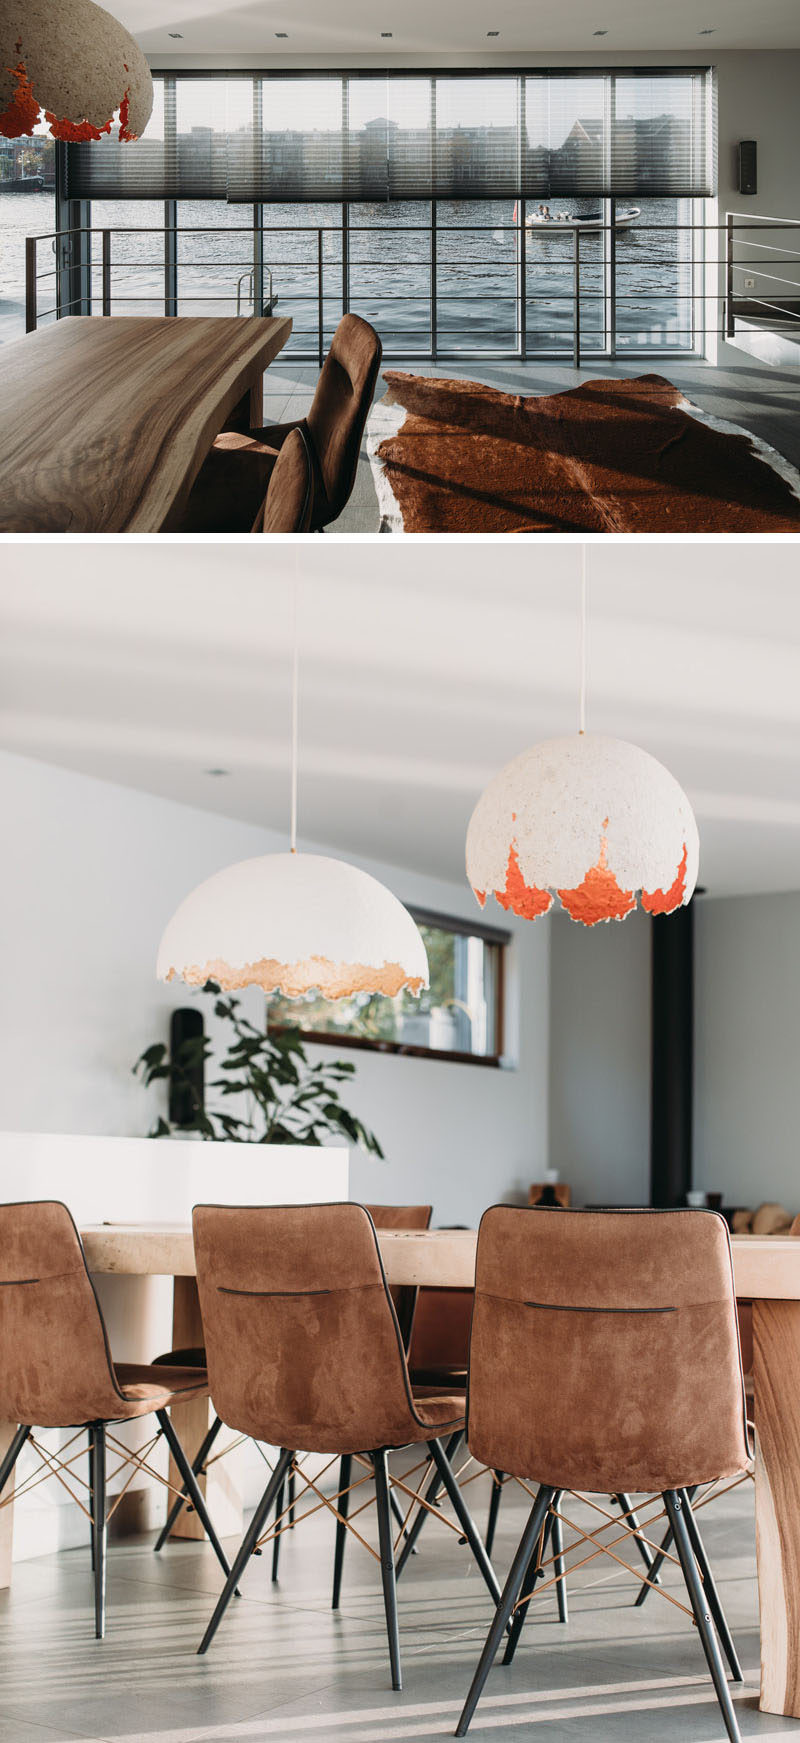 This modern houseboat has a wall of windows that provide views and allow natural light to filter through to the interior. In the dining area, a wood dining table sits below two sculptural pendant lights. #DiningRoom #Windows